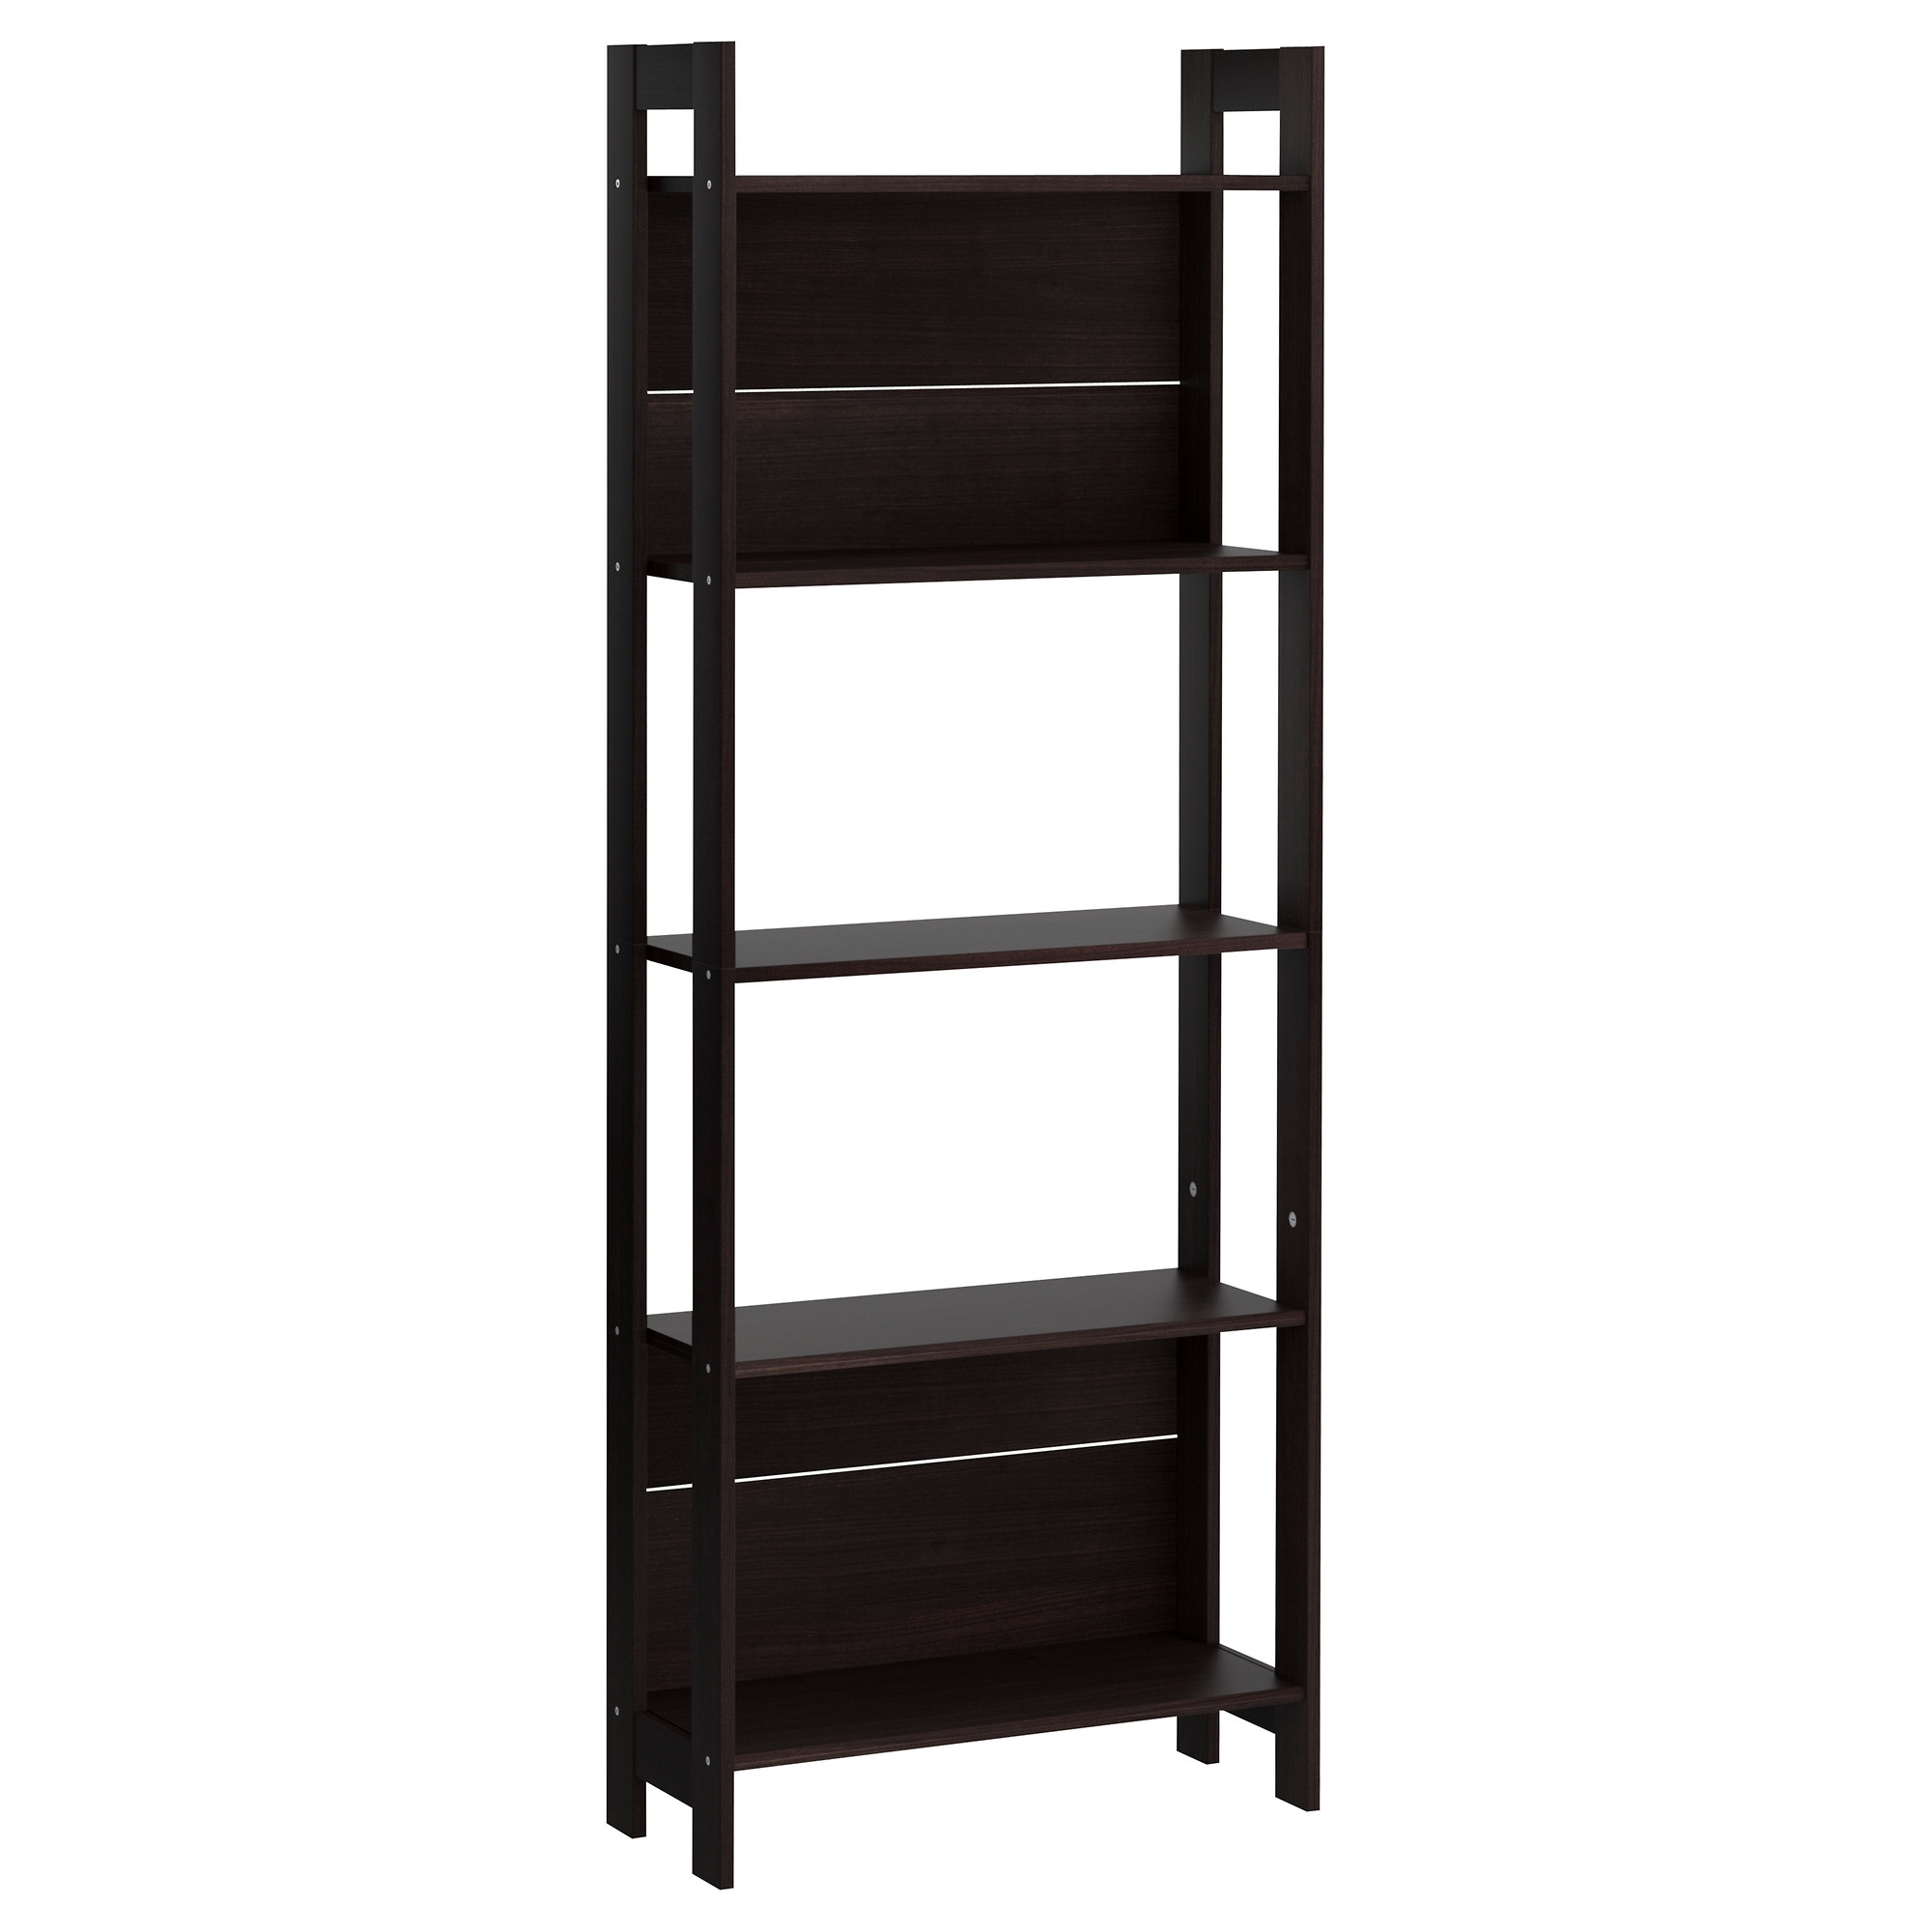 Most Current Laiva Bookcase – Ikea With Ikea Bookcases (View 14 of 15)